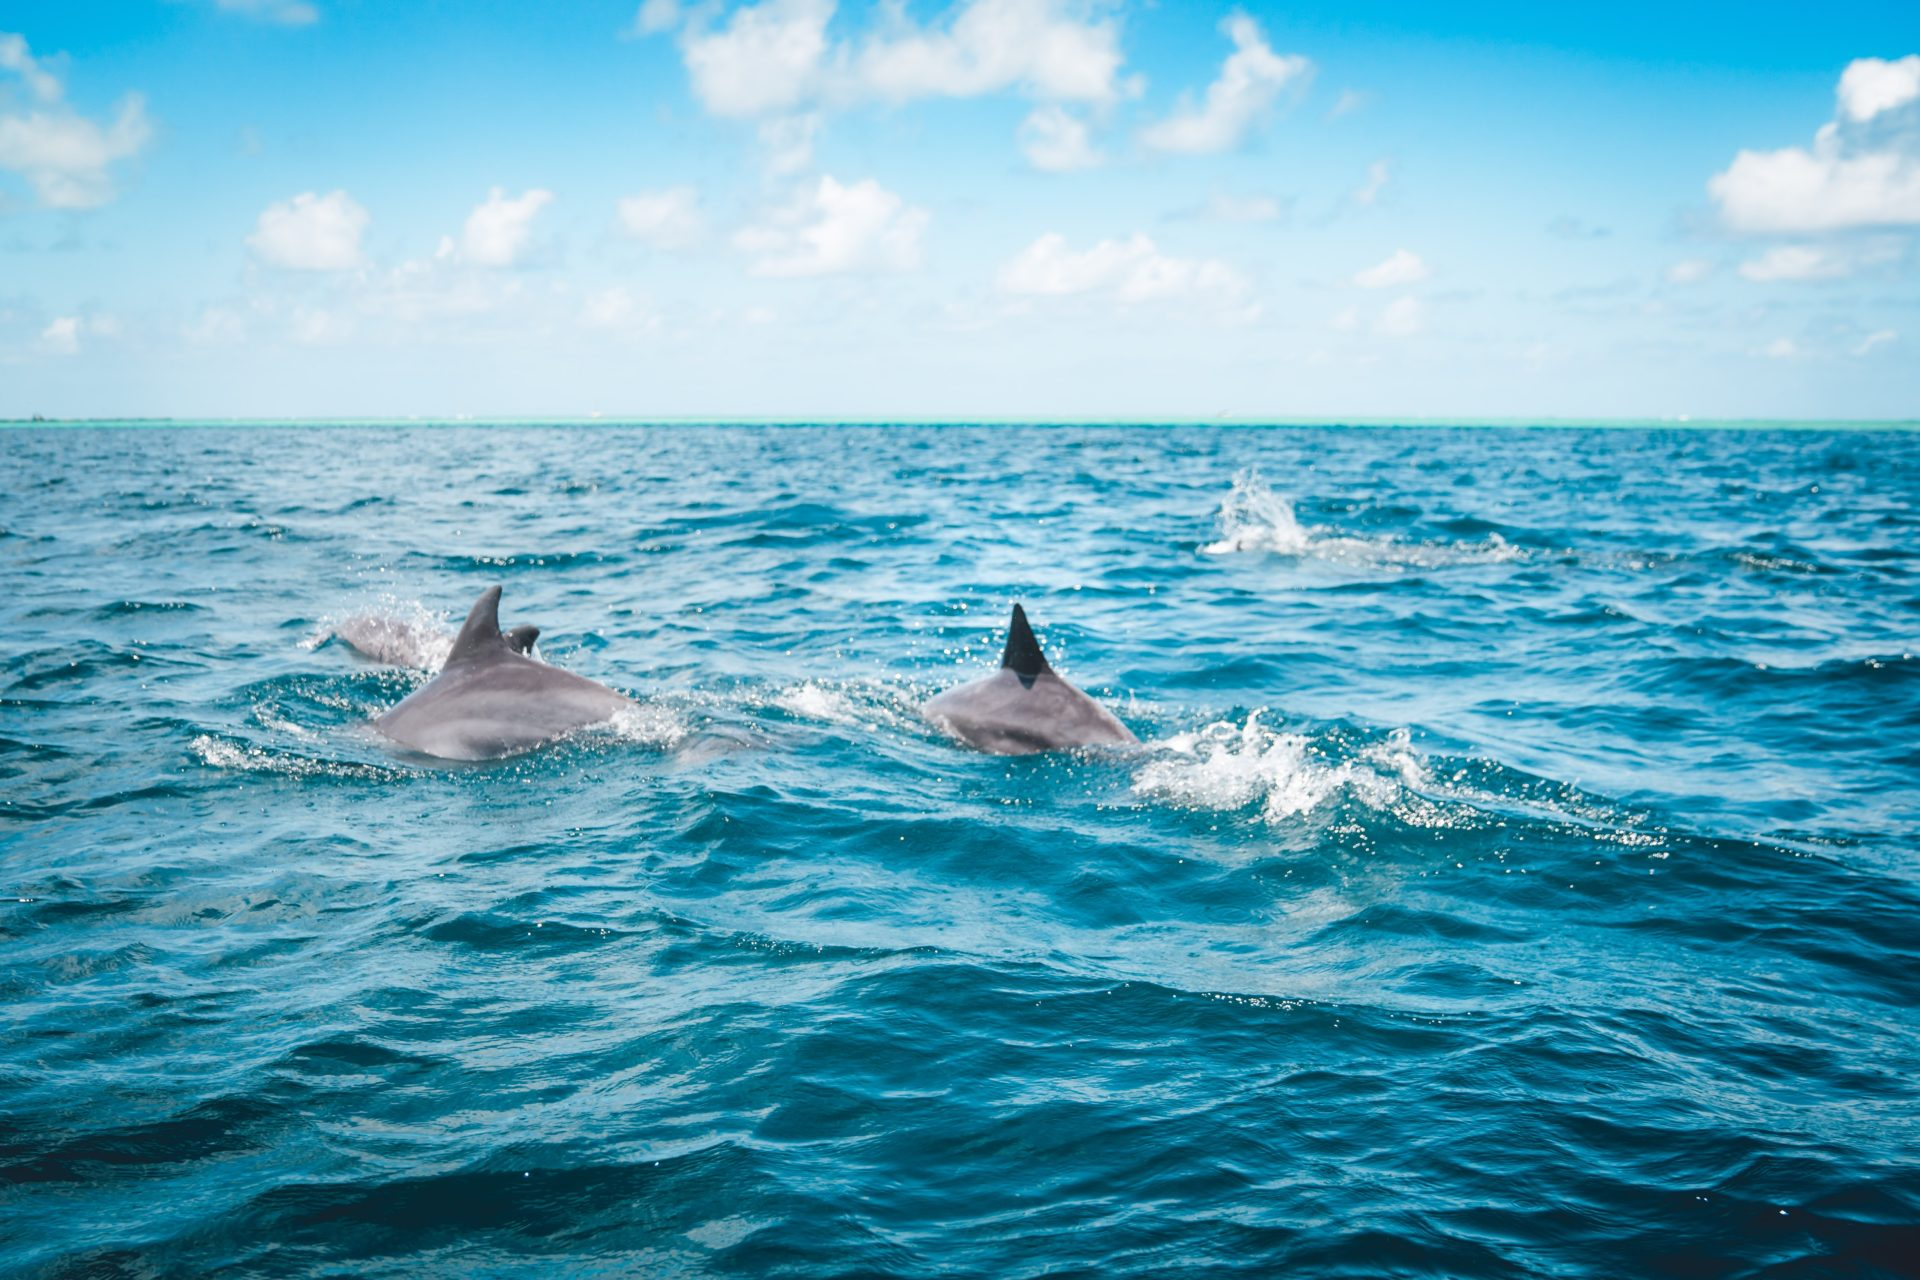 Four dolphins with their fins popping out of the water